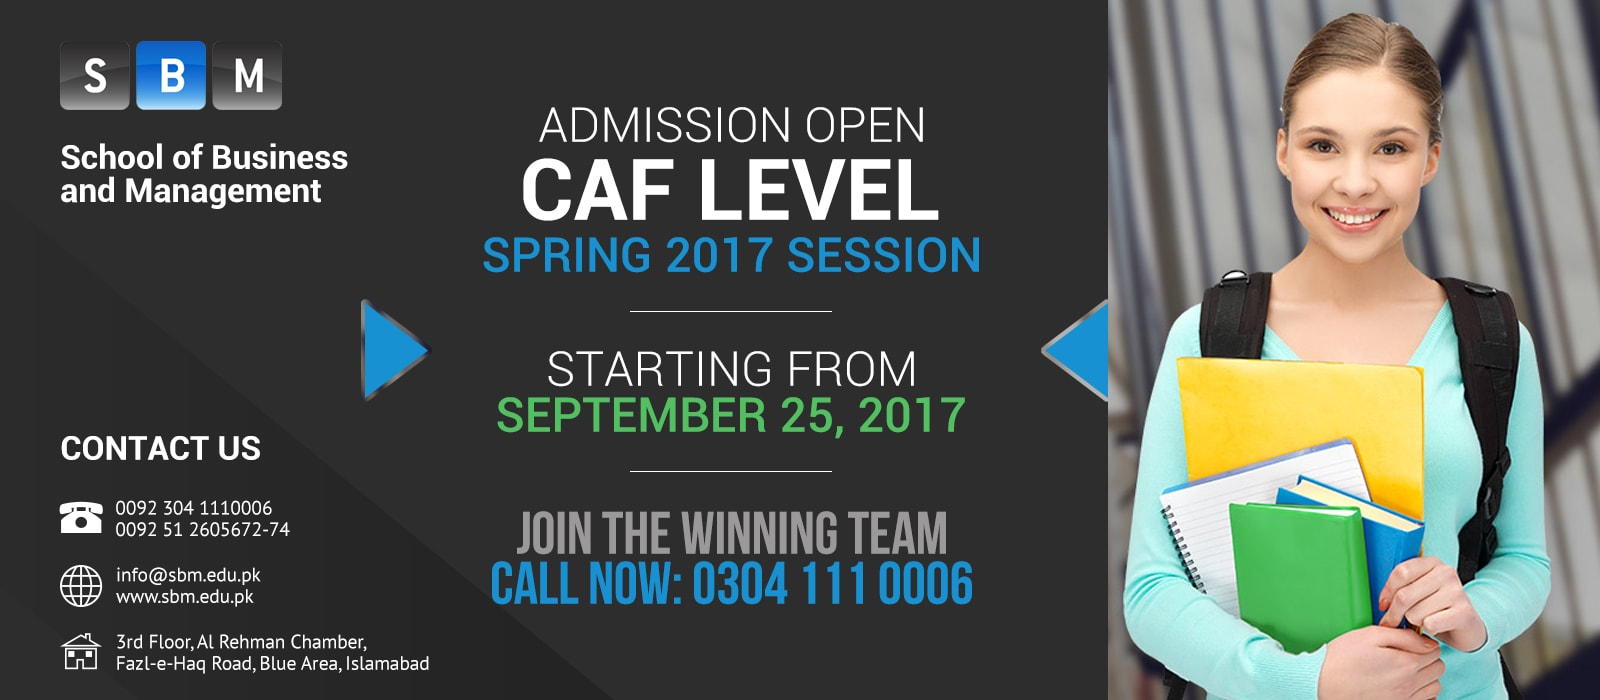 Spring 2017 Session of CAF Level starting from 25 Sep